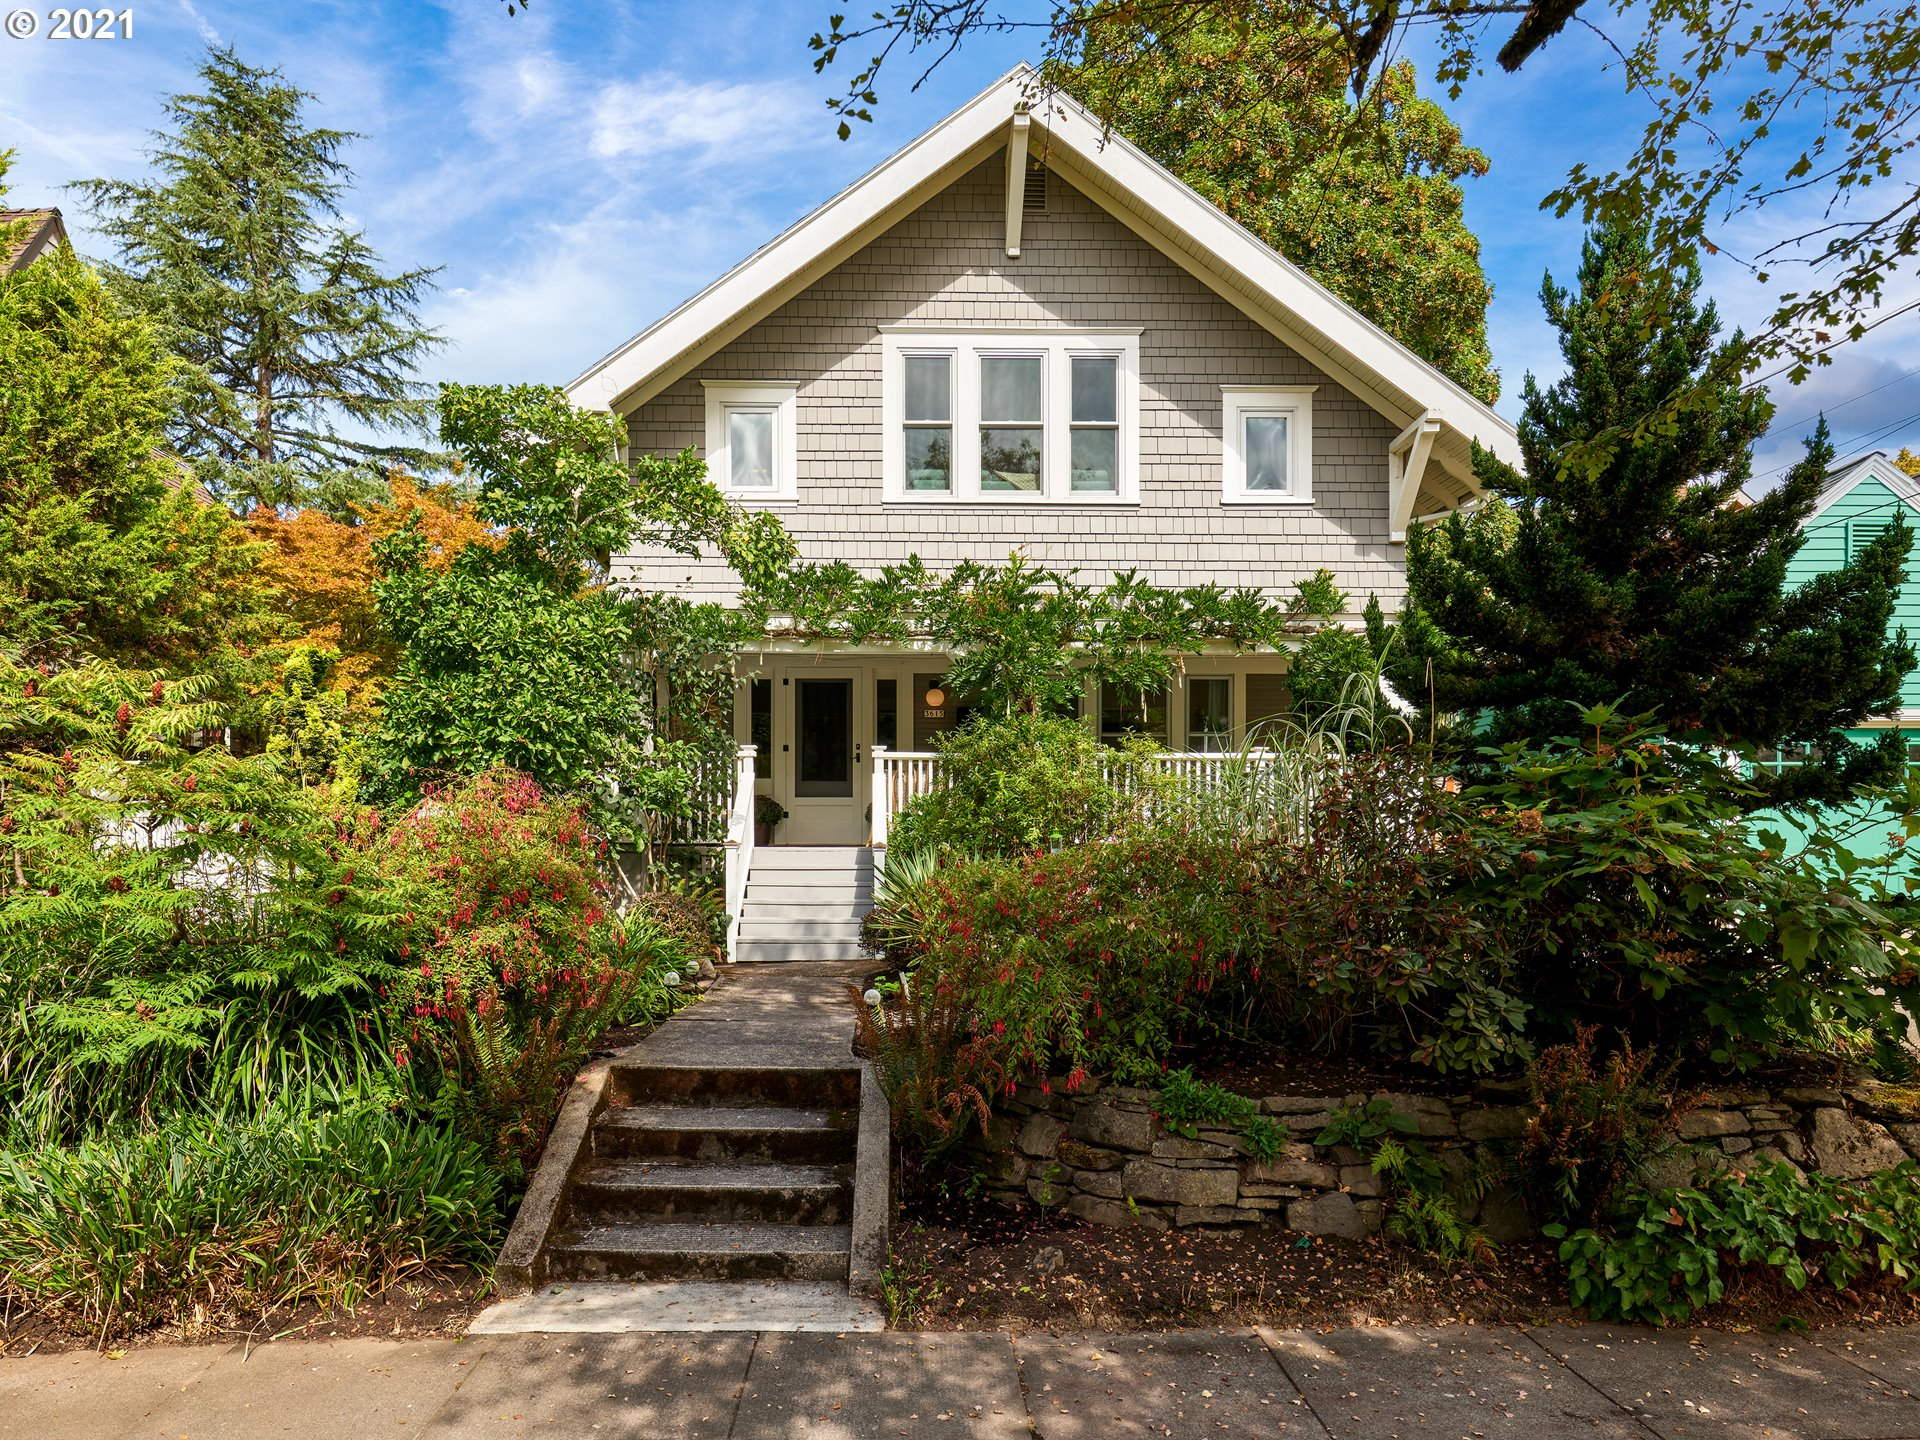 This 3 Bed, 1.5 Bath Craftsman Farmhouse in Grant Park is a dialed-in dream. Covered front porch, high ceilings over refin oak floors, built-ins, FP & vintage charm w/ fab accents of modernism. Exquisite kitchen remodel: SS appliances, quartz counters, Boos block island. DR w/ French doors to patio in fenced wraparound yard. 3 lg beds up w/ mega closets. Storage in basement & garden shed (w/elec & H2O). A/C. Hot locale by restaurants, MAX & Grant Park's pool, tennis, dog park. Mins to downtown! [Home Energy Score = 3. HES Report at https://rpt.greenbuildingregistry.com/hes/OR10194844]